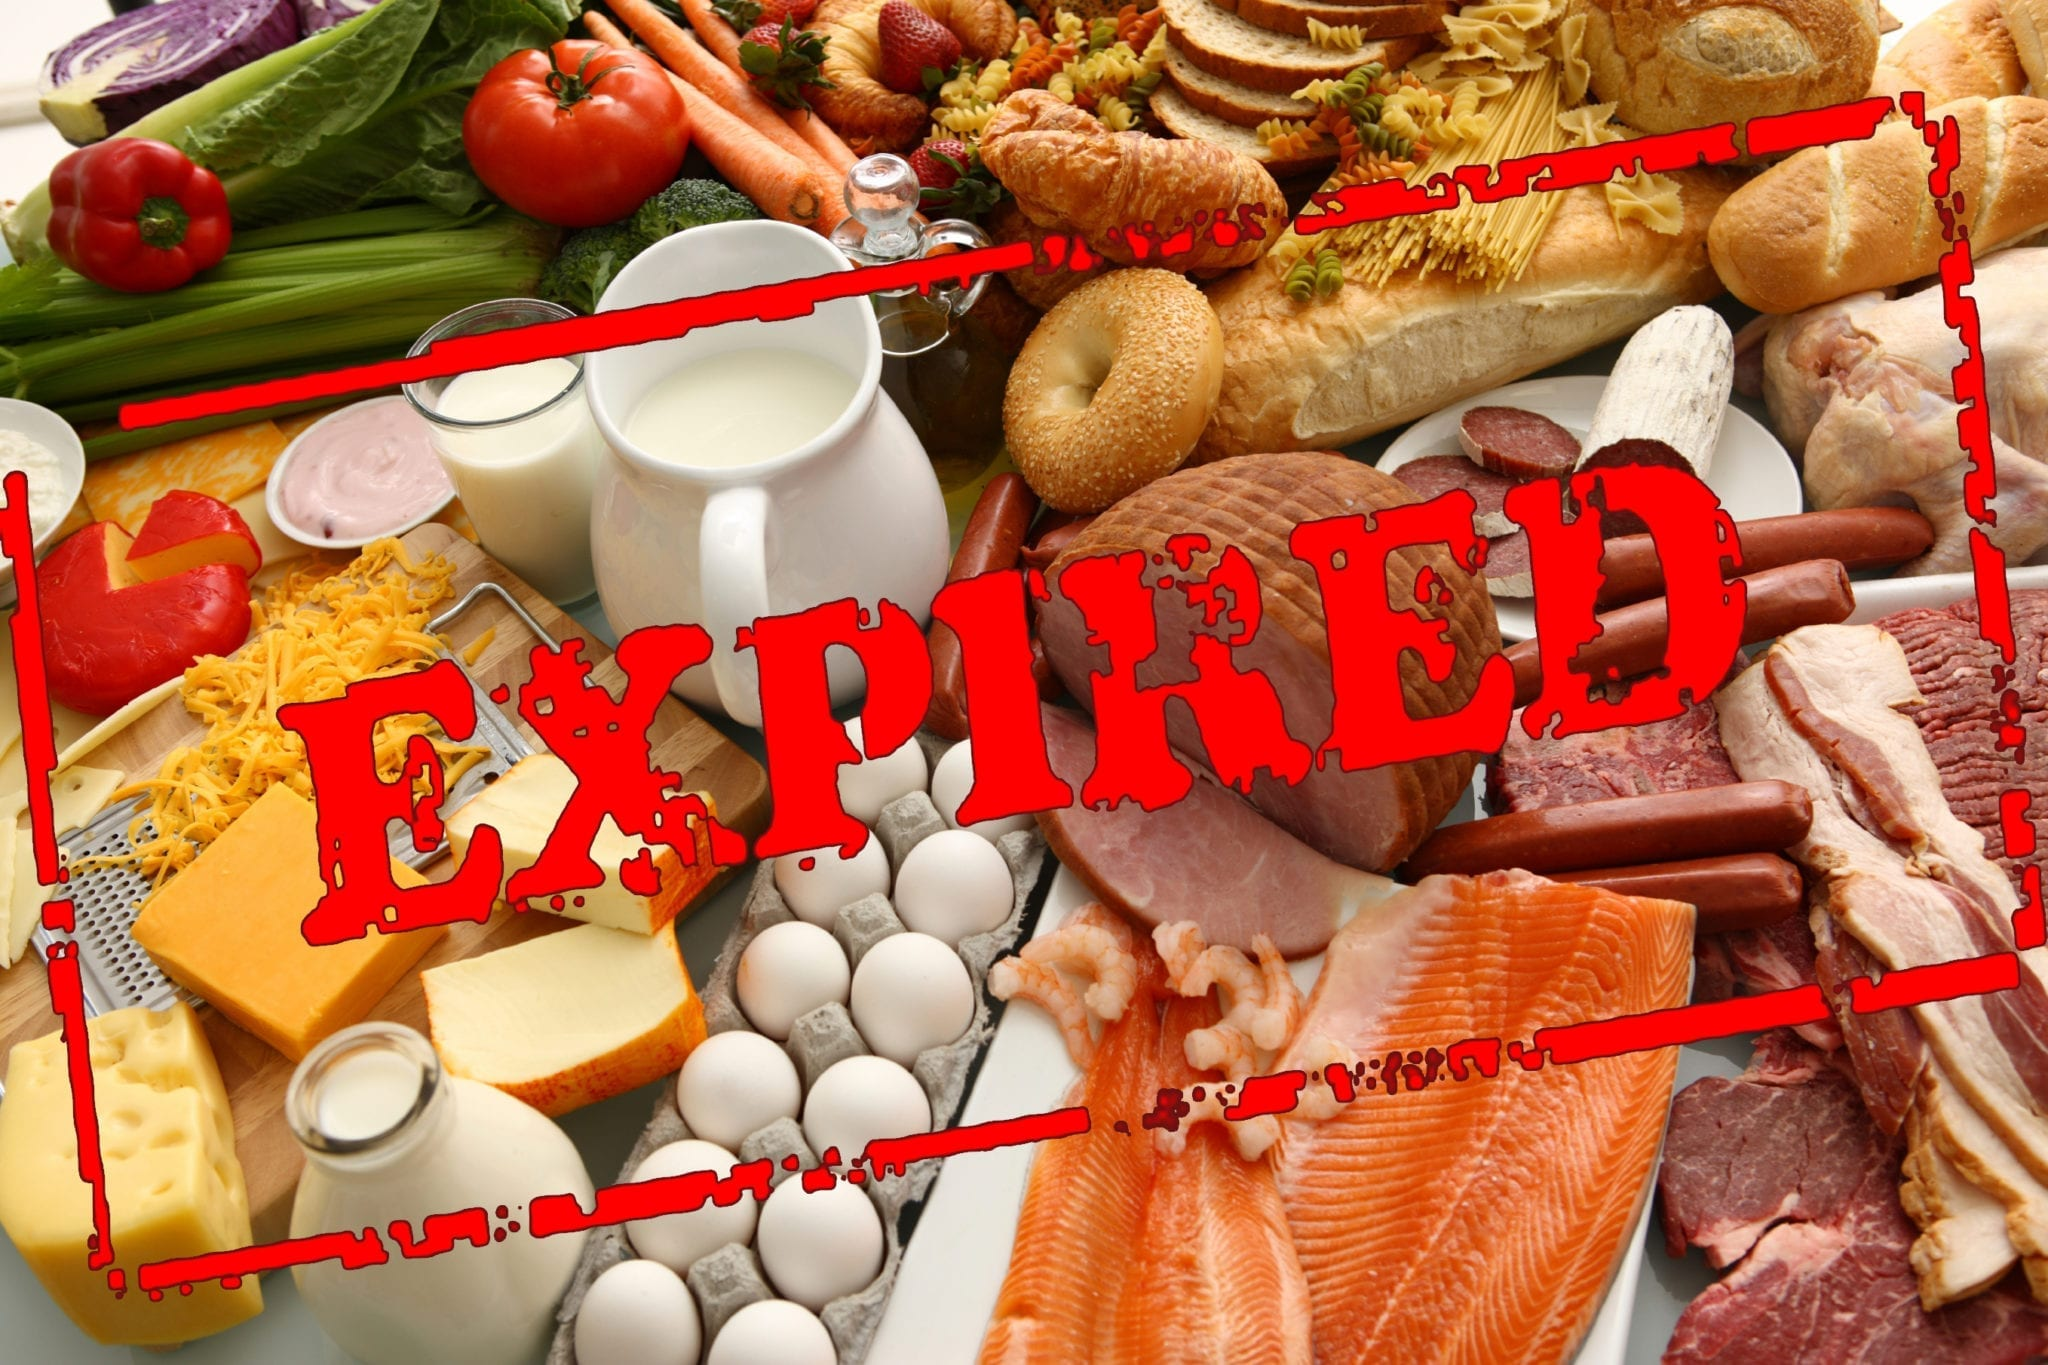 Remove any expired foodstuffs in shelves, not only TBS work